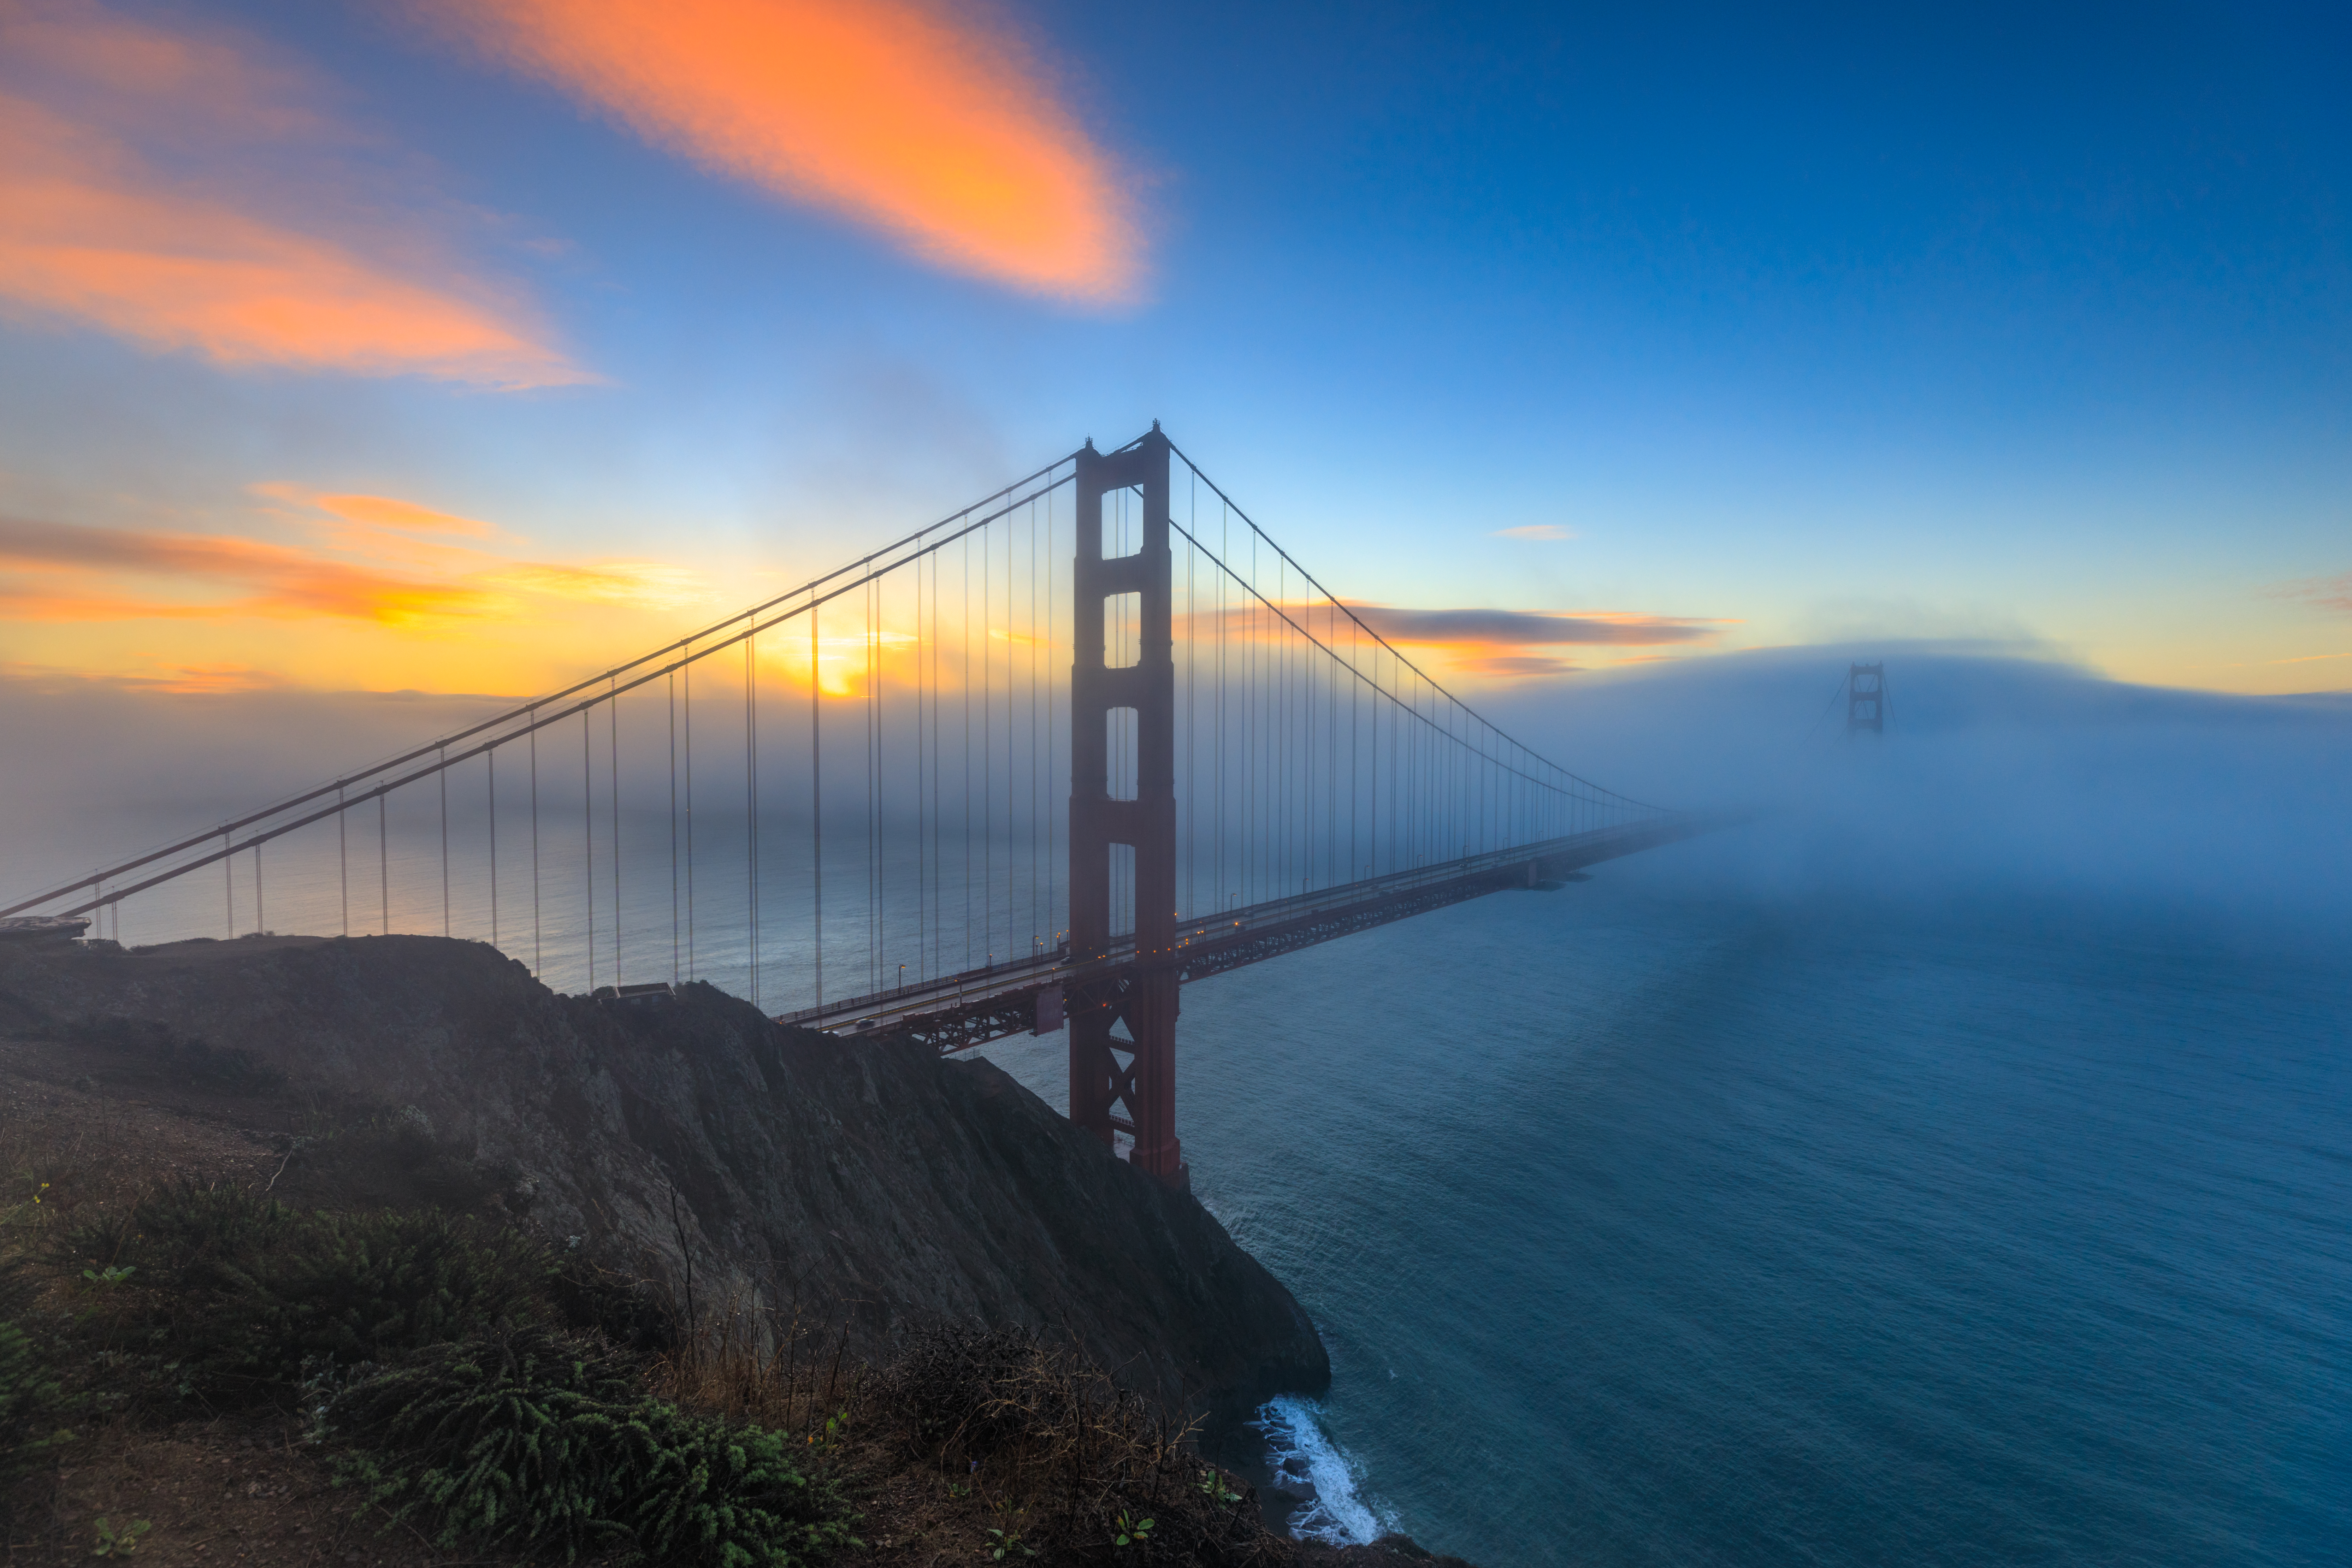 Purchase a Print of Golden Gate Glow